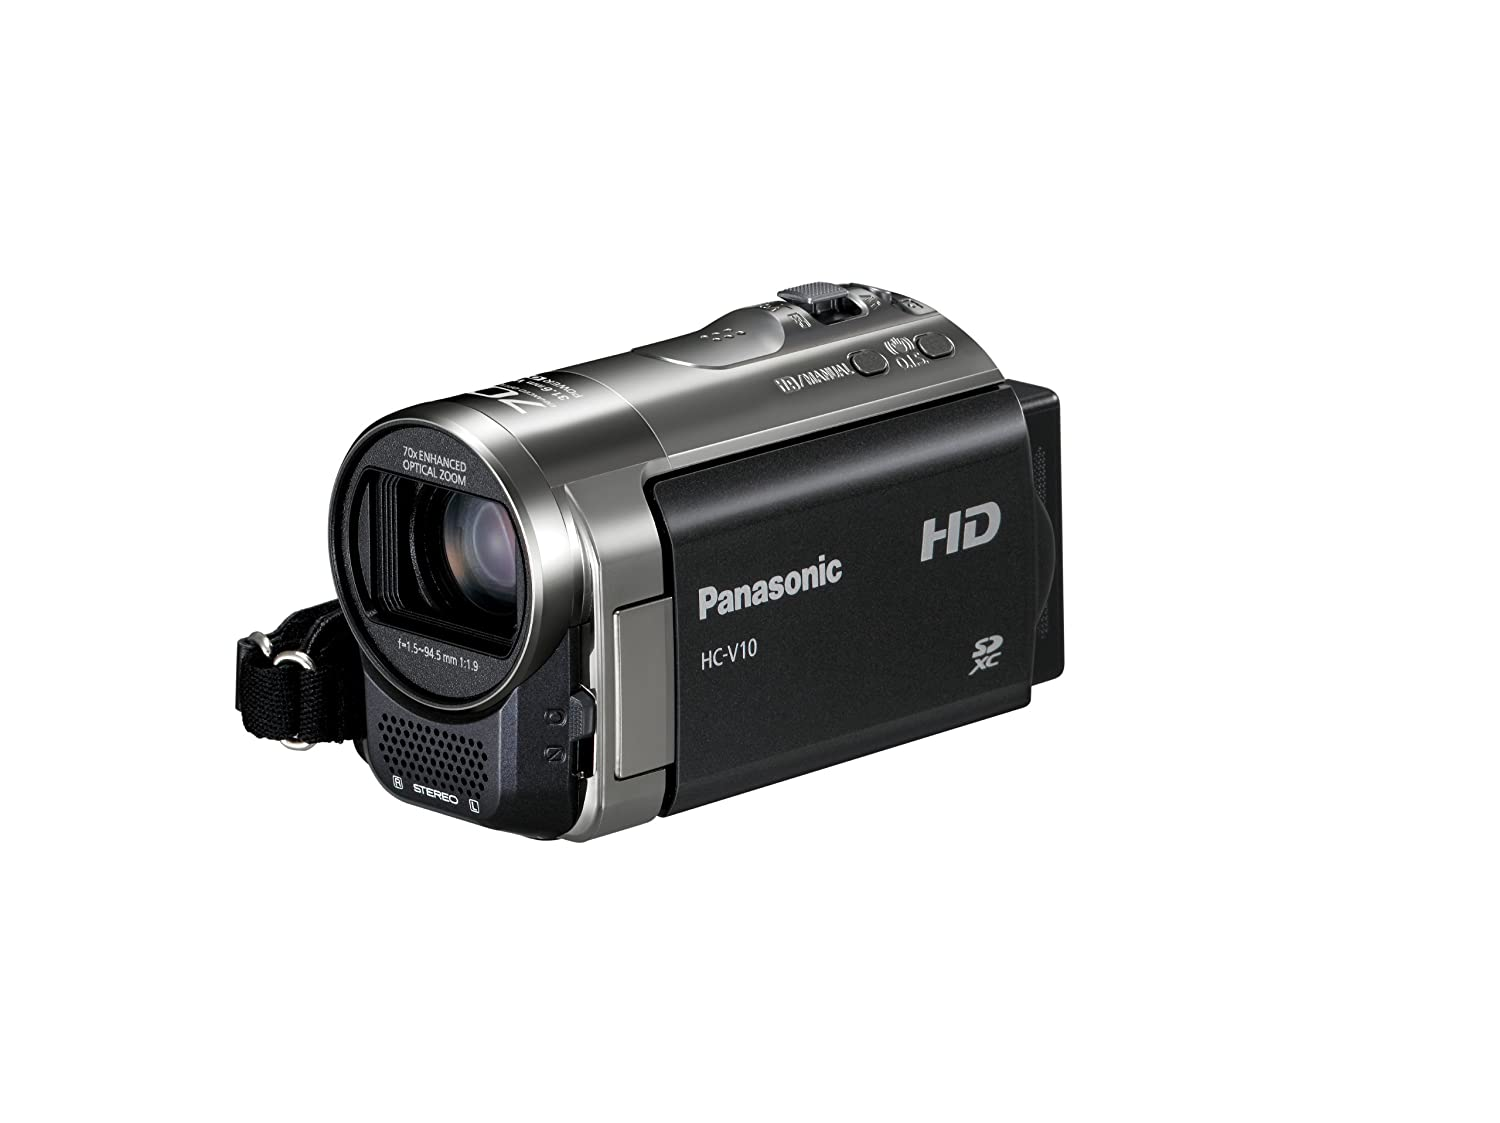 Huge Step Forw Panasonic Hc Tipos De Cancer Vx985 4k Ultra Hd Camcorder Amazoncom V10k 70x Optical Zoom Sd Black